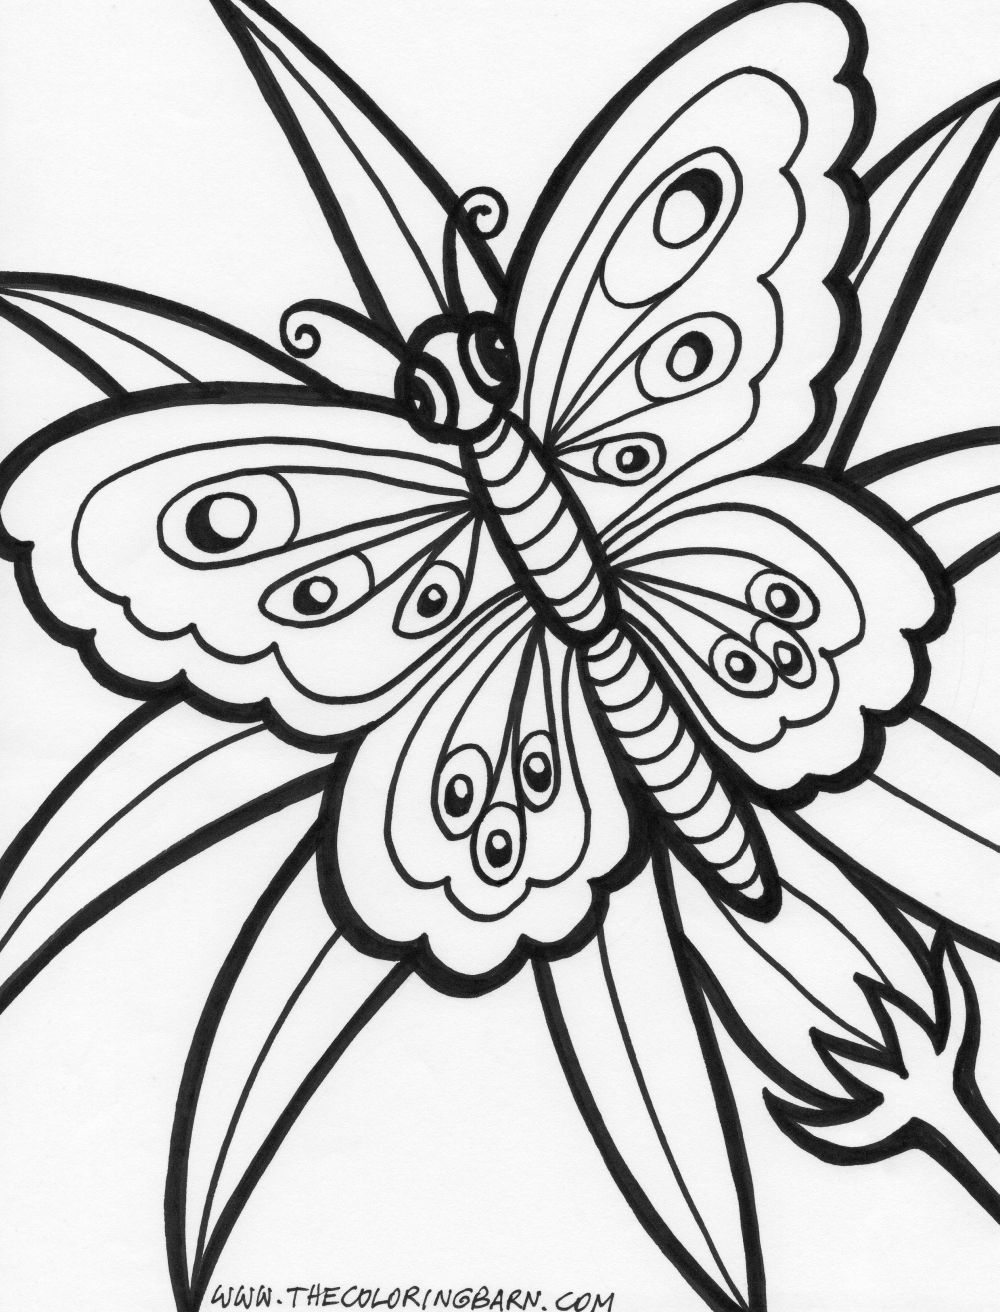 5 Images of Printable Floral Coloring Pages